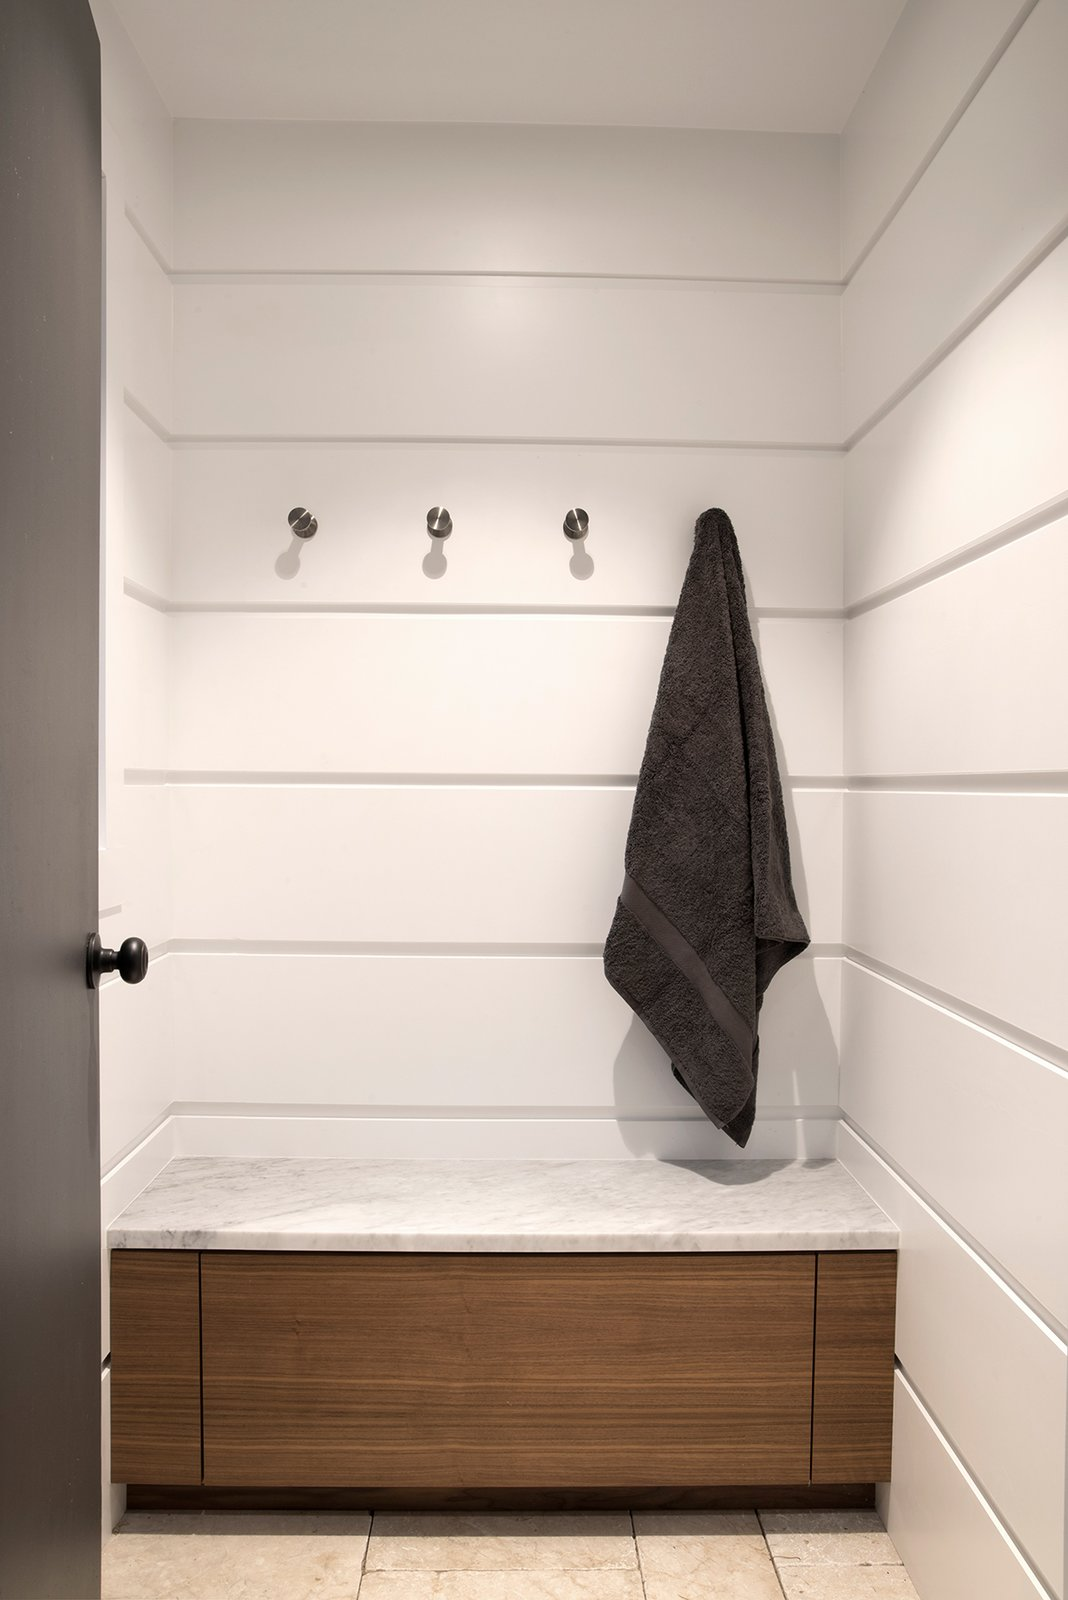 The Free Float Pool House's interior changing room features white wall panels with reveals for visual interest.